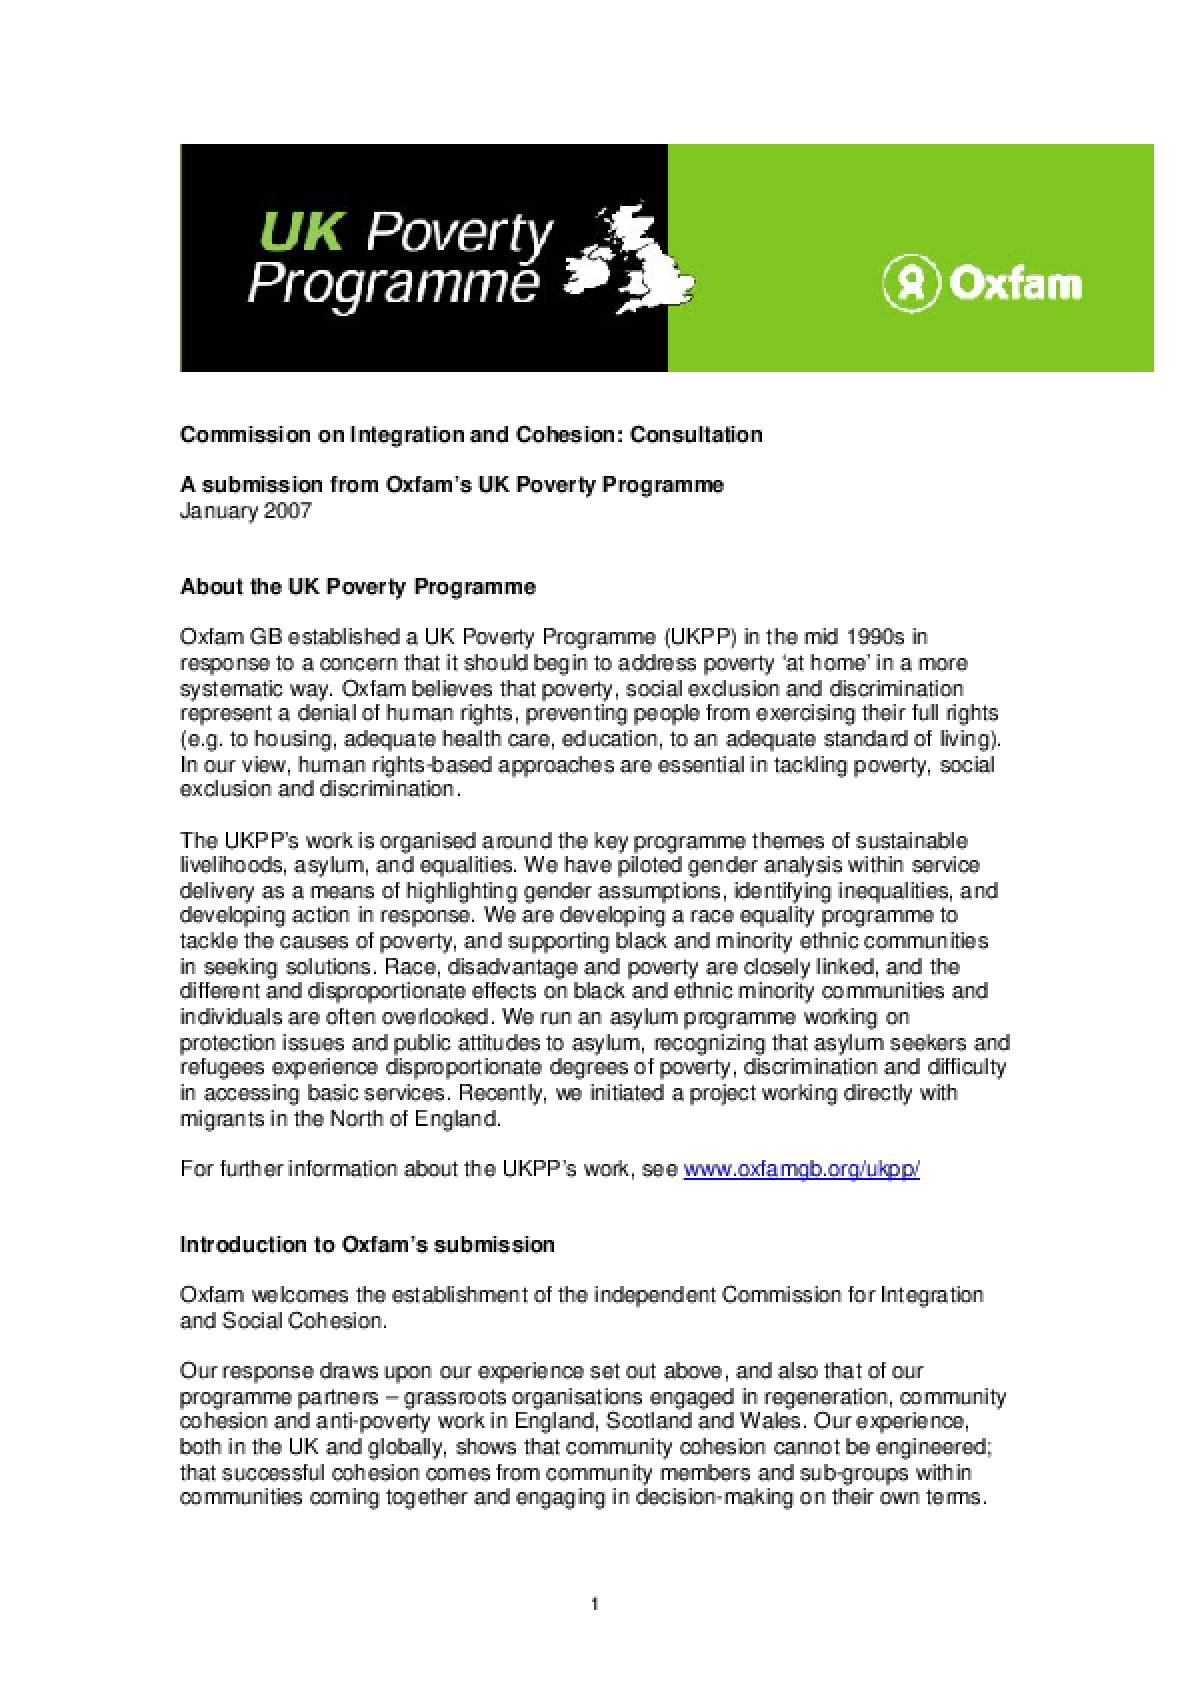 Commission on Intergration and Cohesion Consultation: A submission from Oxfam's UK Poverty Programme